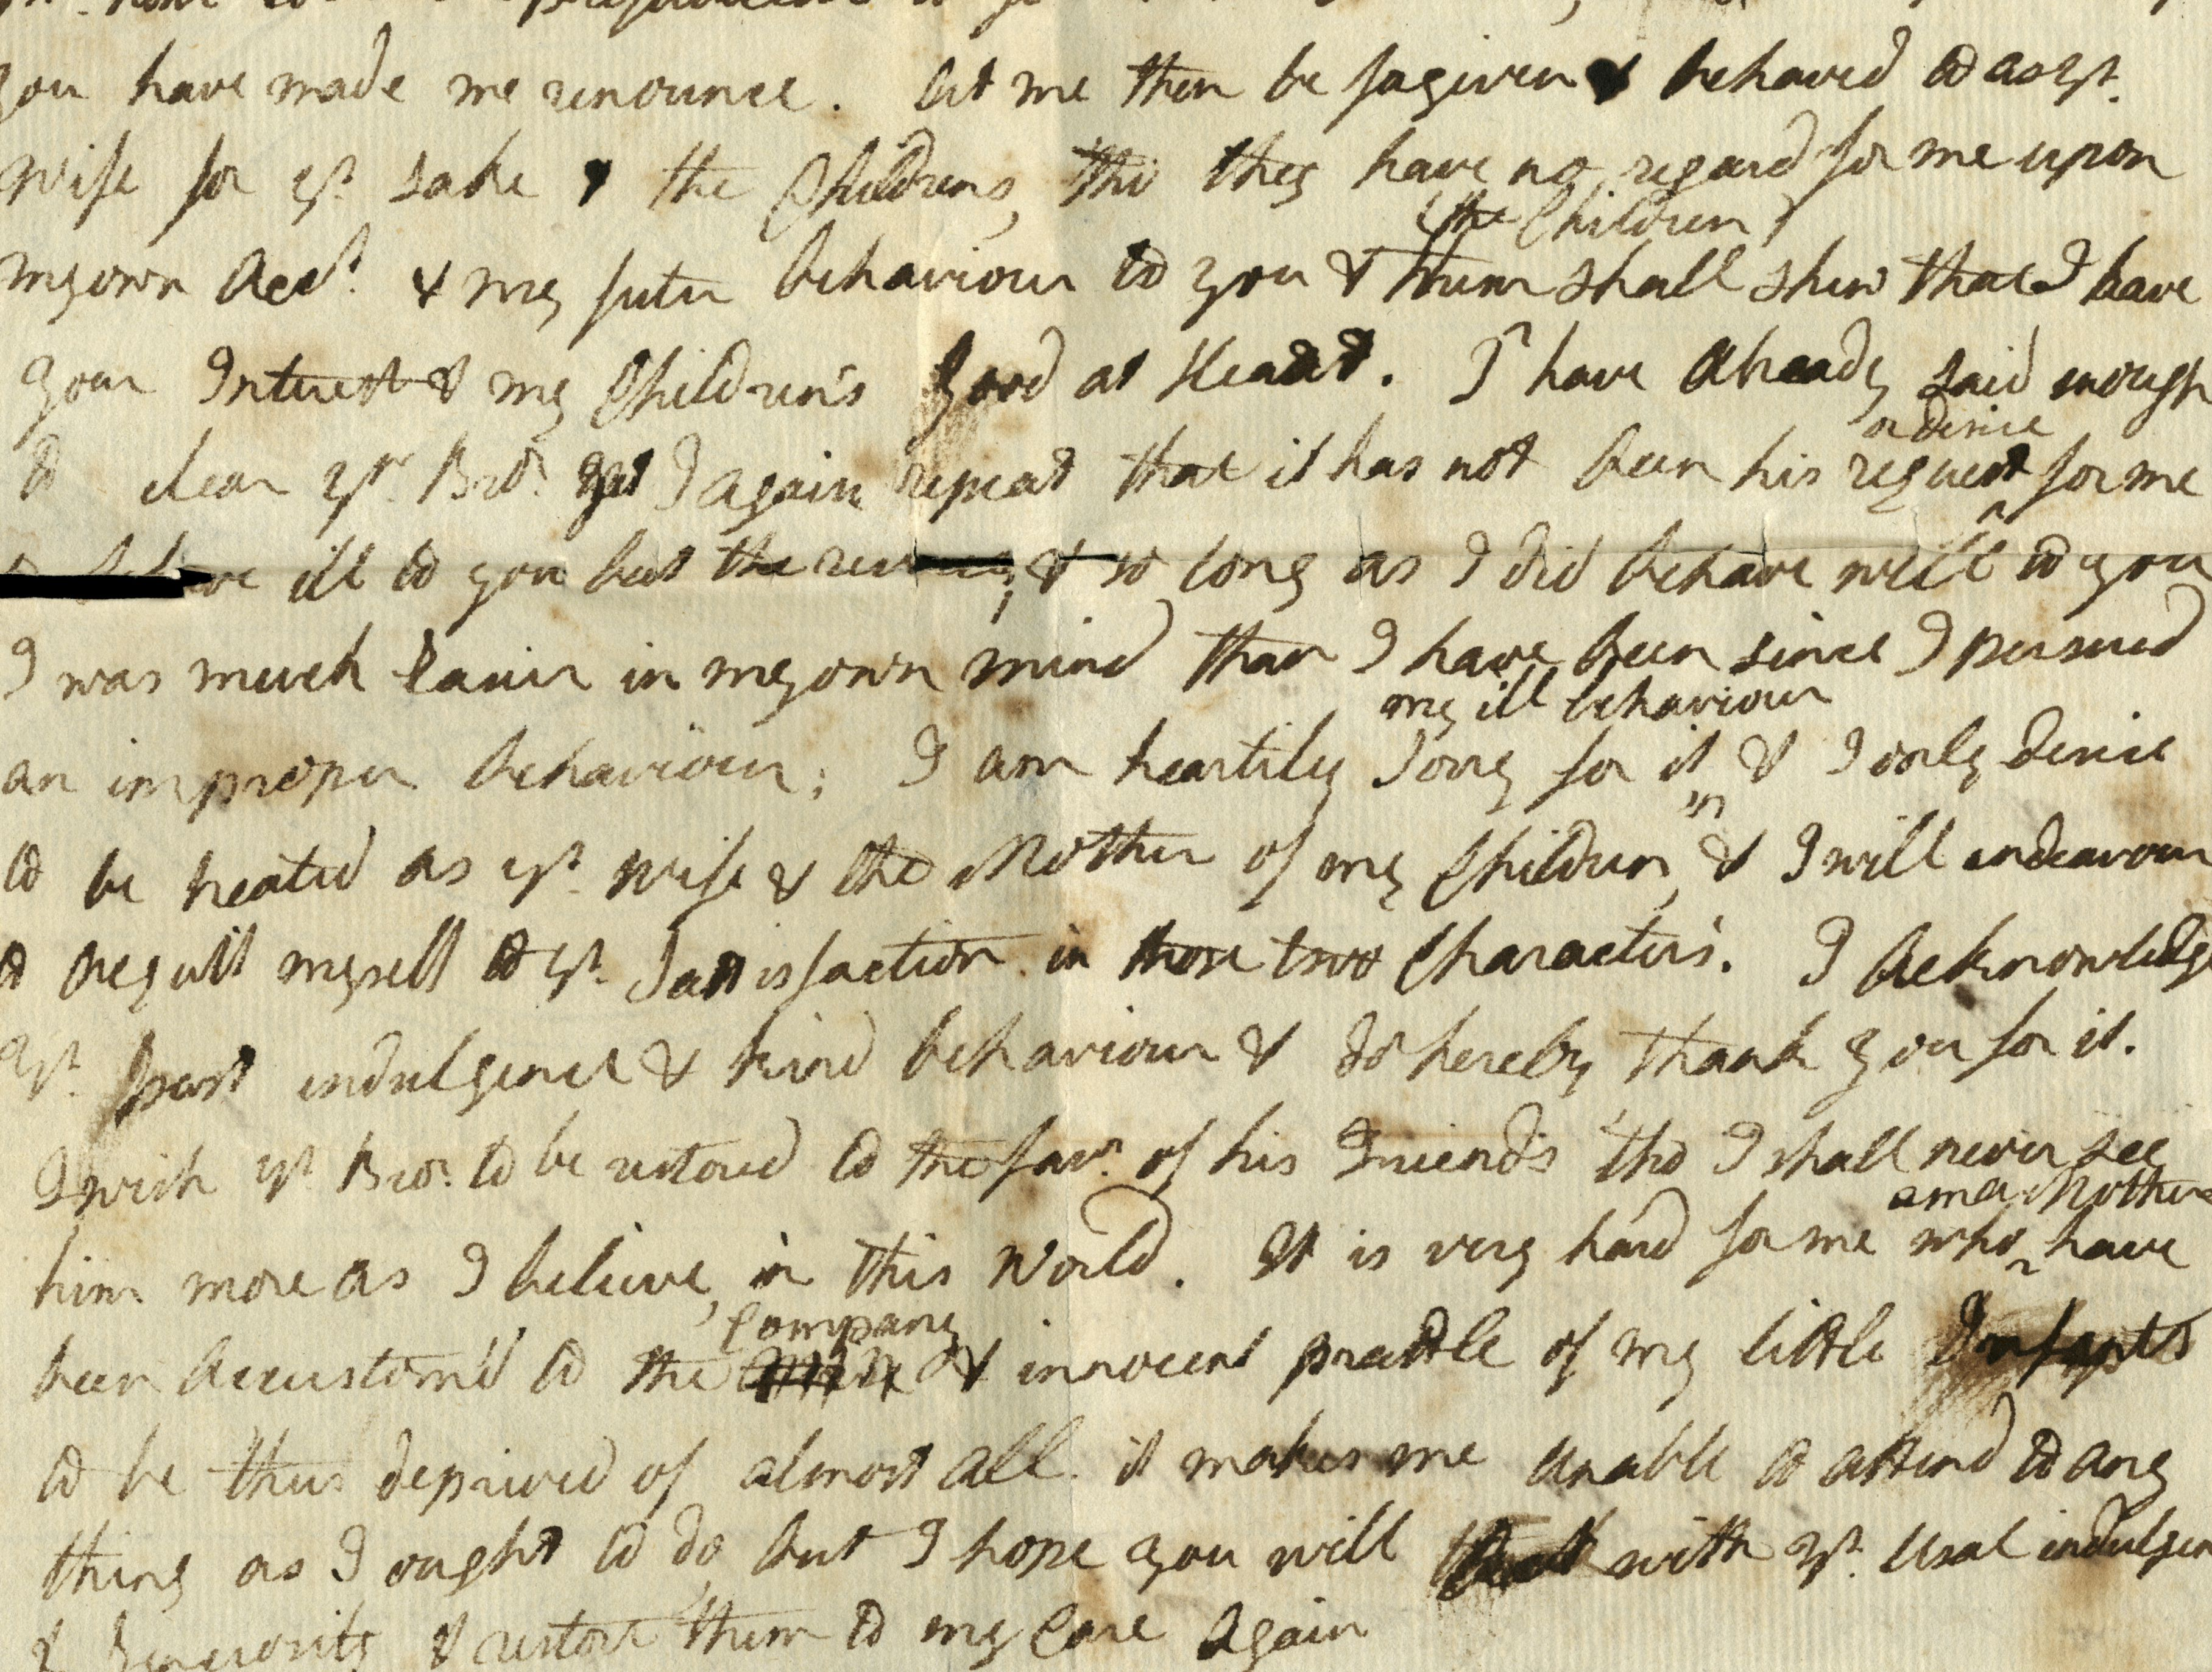 Learn how to approach the variety of interesting challenges that old documents and records can present, including tips for reading old handwriting such as that seen in this old handwritten letter.